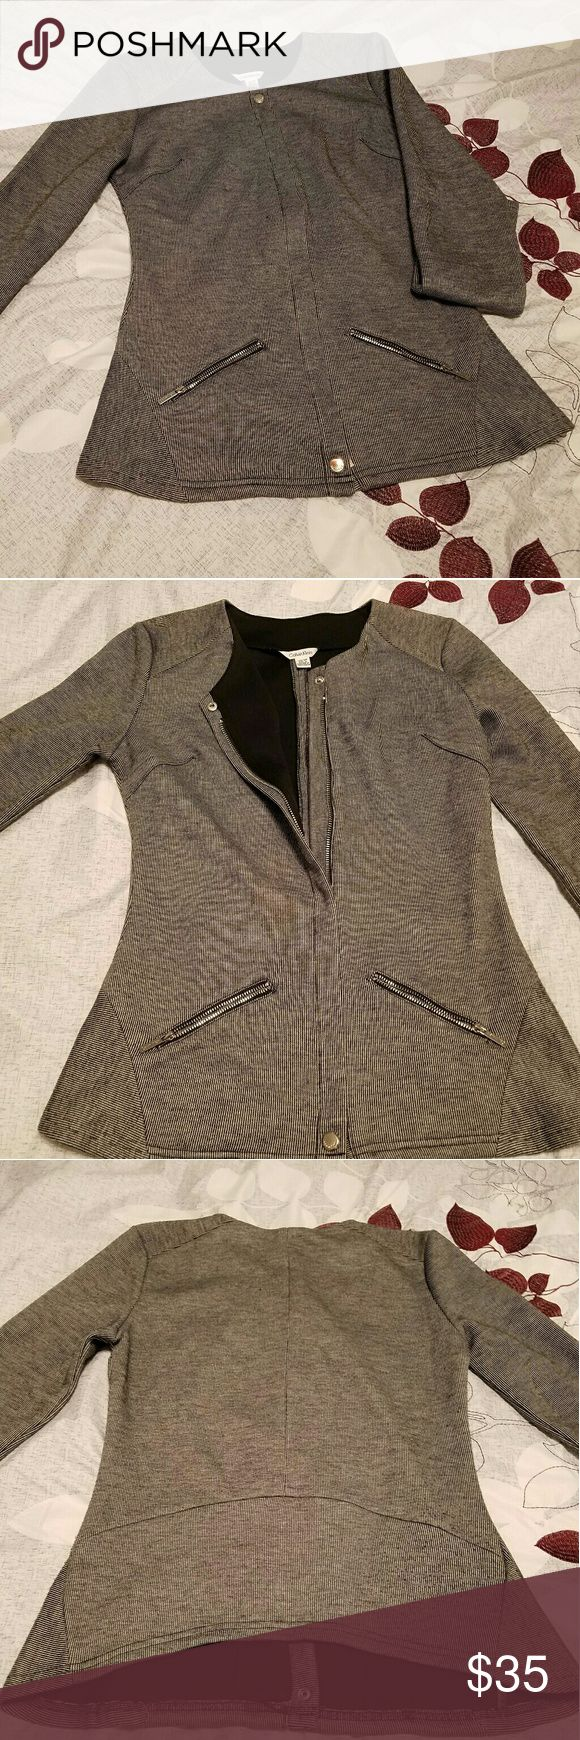 Calvin Klein Women's suit jacket with pockets Calvin Klein zip up suit jacket, pockets with zip, XS petite, slightly used, great condition Calvin Klein Jackets & Coats Blazers